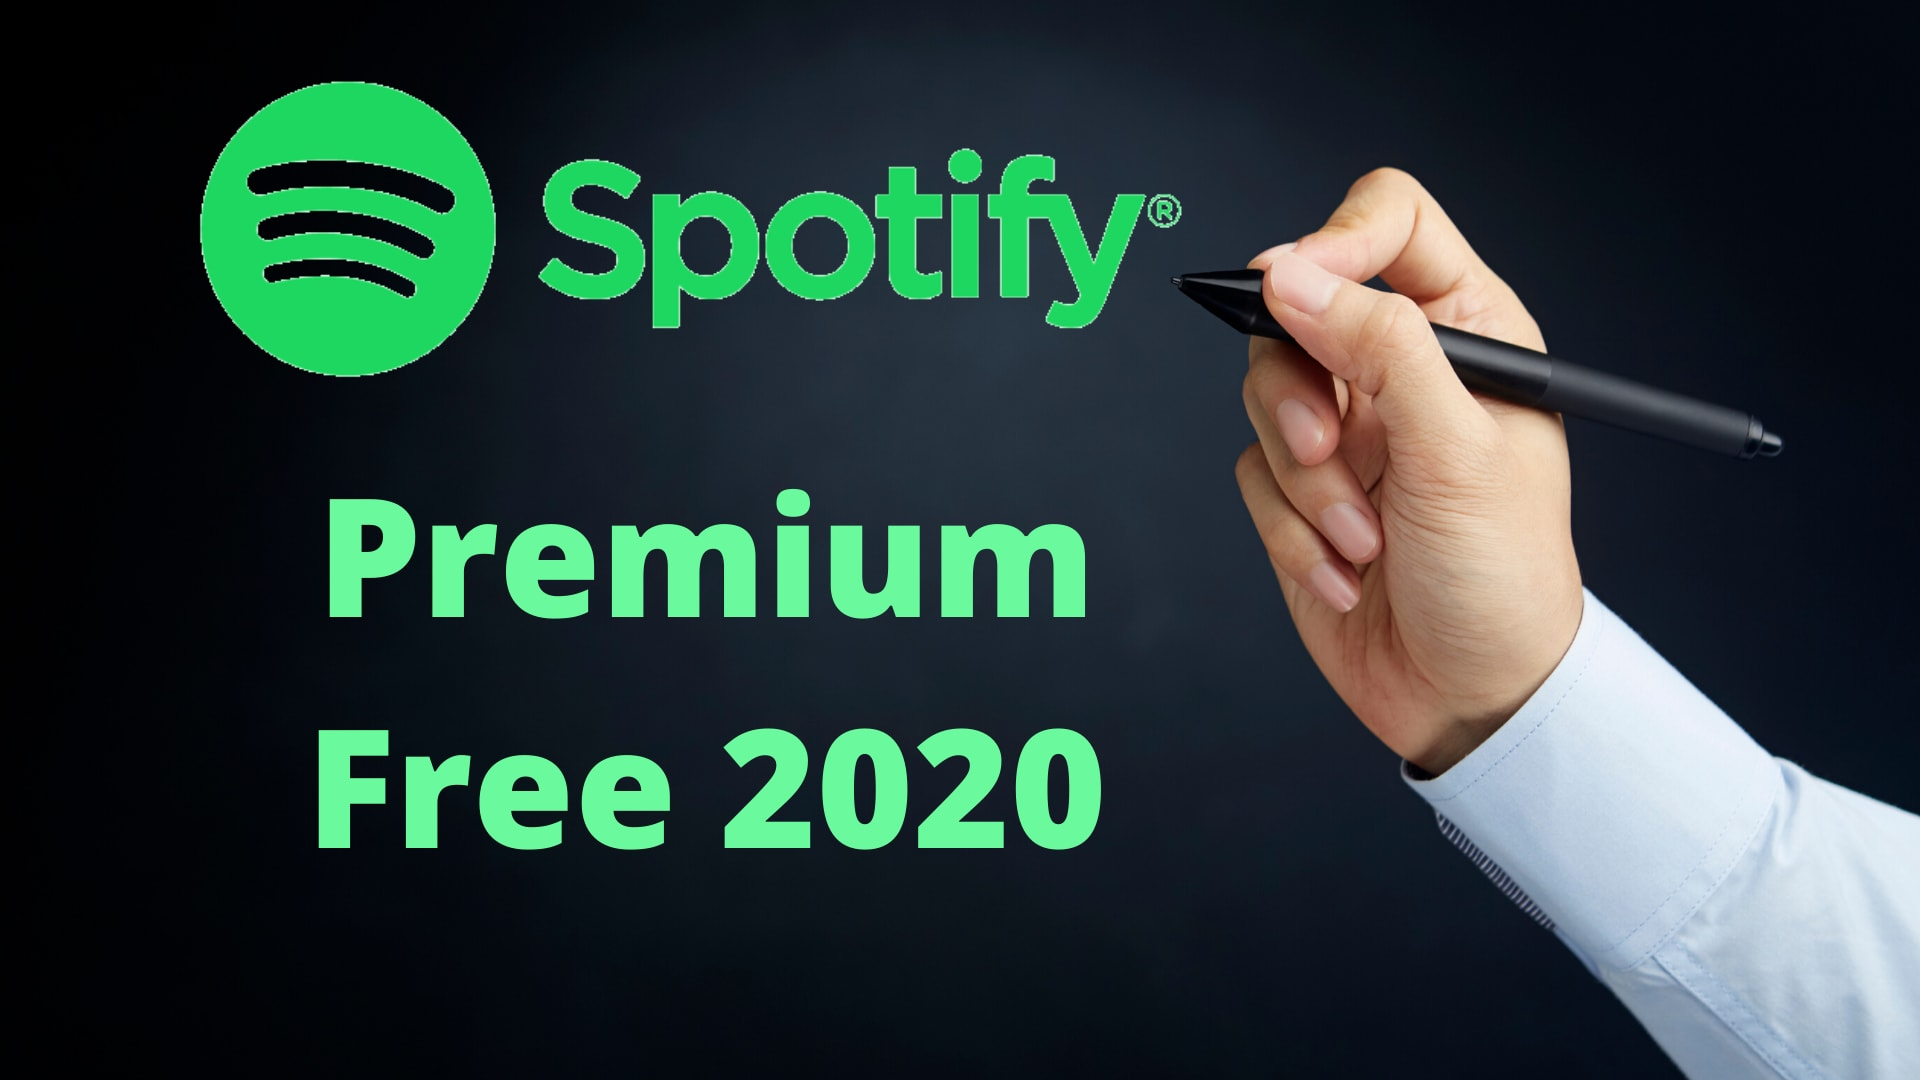 Spotify Premium Free - How to get Spotify Premium Free (100% Working Method) 2020